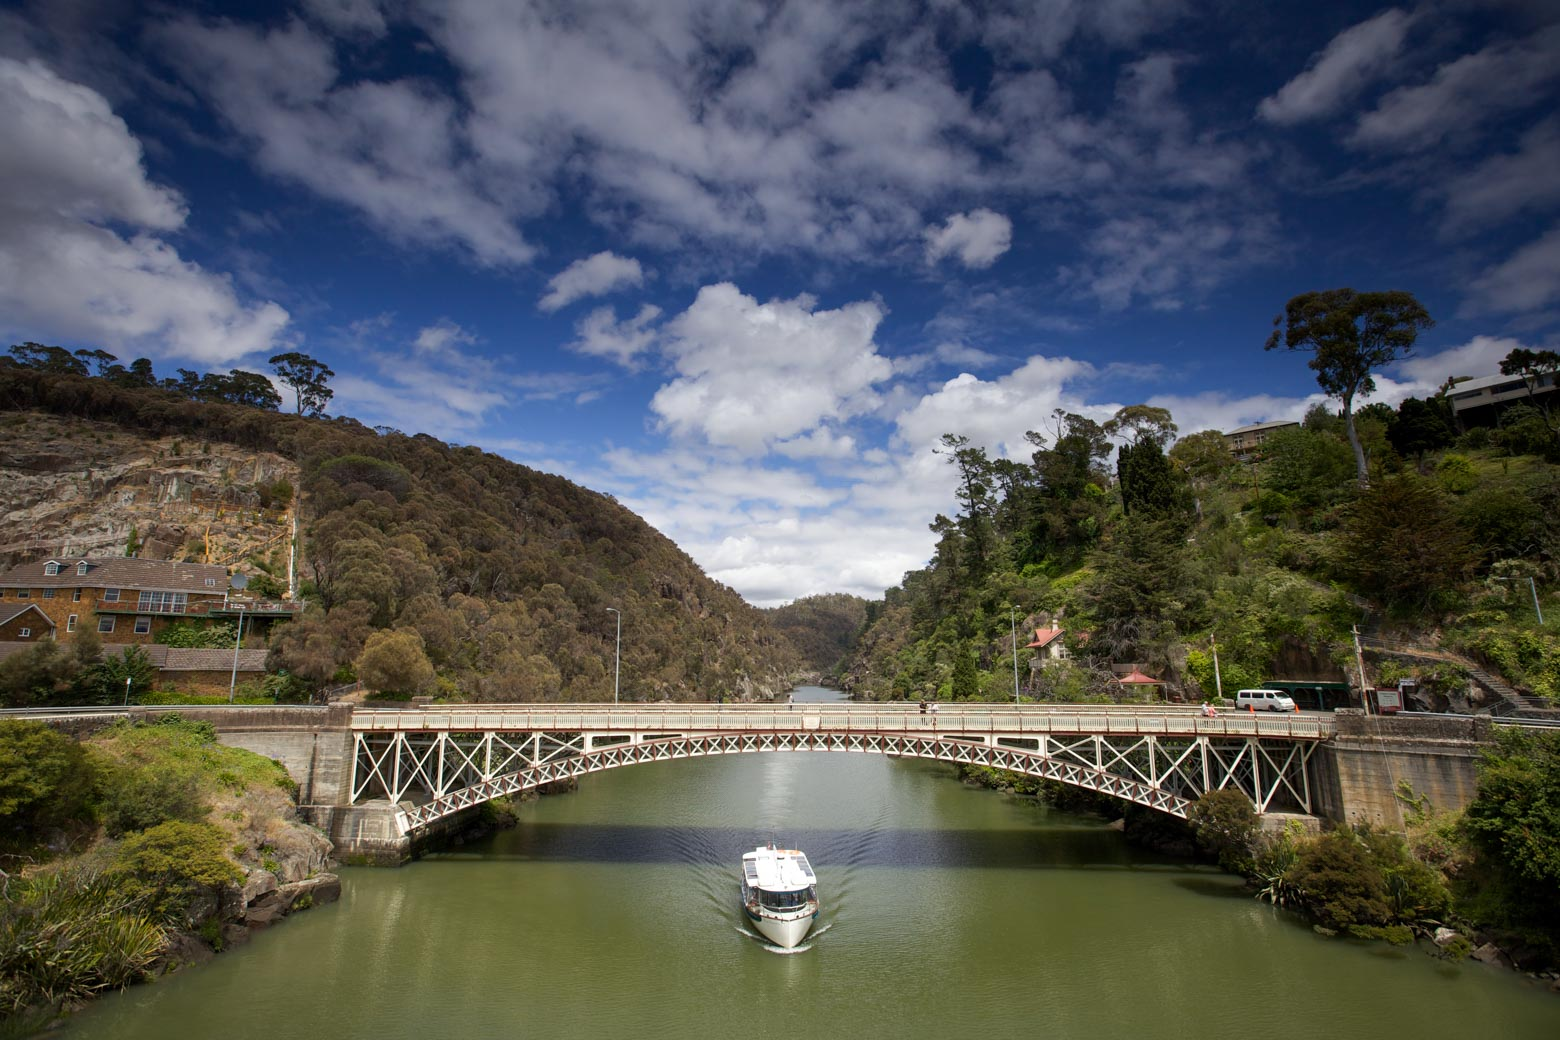 Visit Cataract Gorge Reserve on your Lap of Tasmania road trip